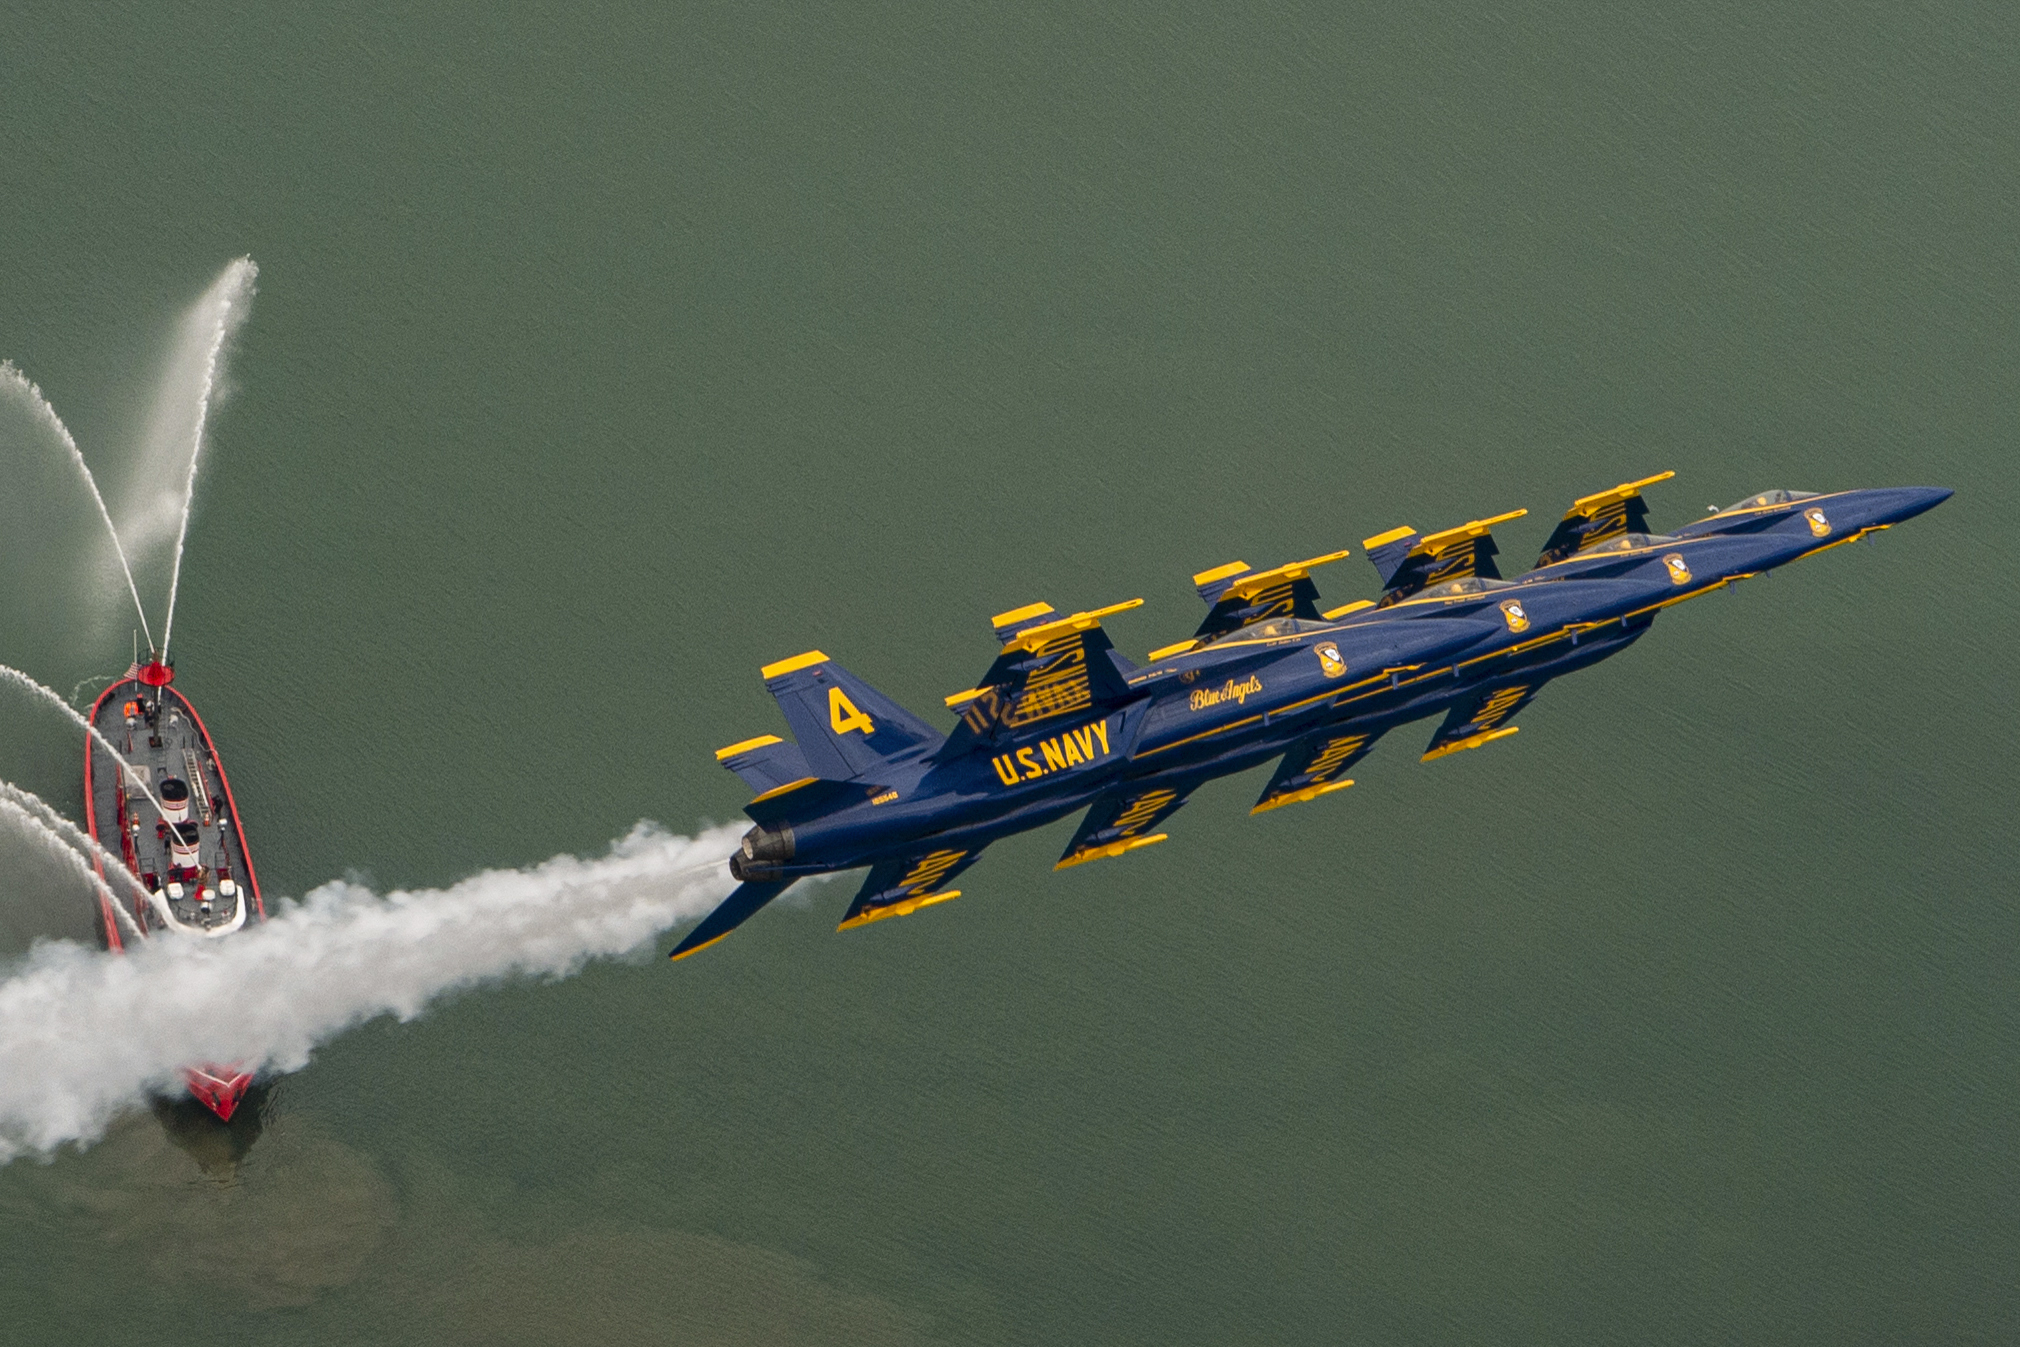 The Blue Angels, the Navy's flight demonstration squadron, performs the left echelon parade maneuver during an airshow in Buffalo, N.Y., June 18. (MC2 Christopher Gordon/Navy)